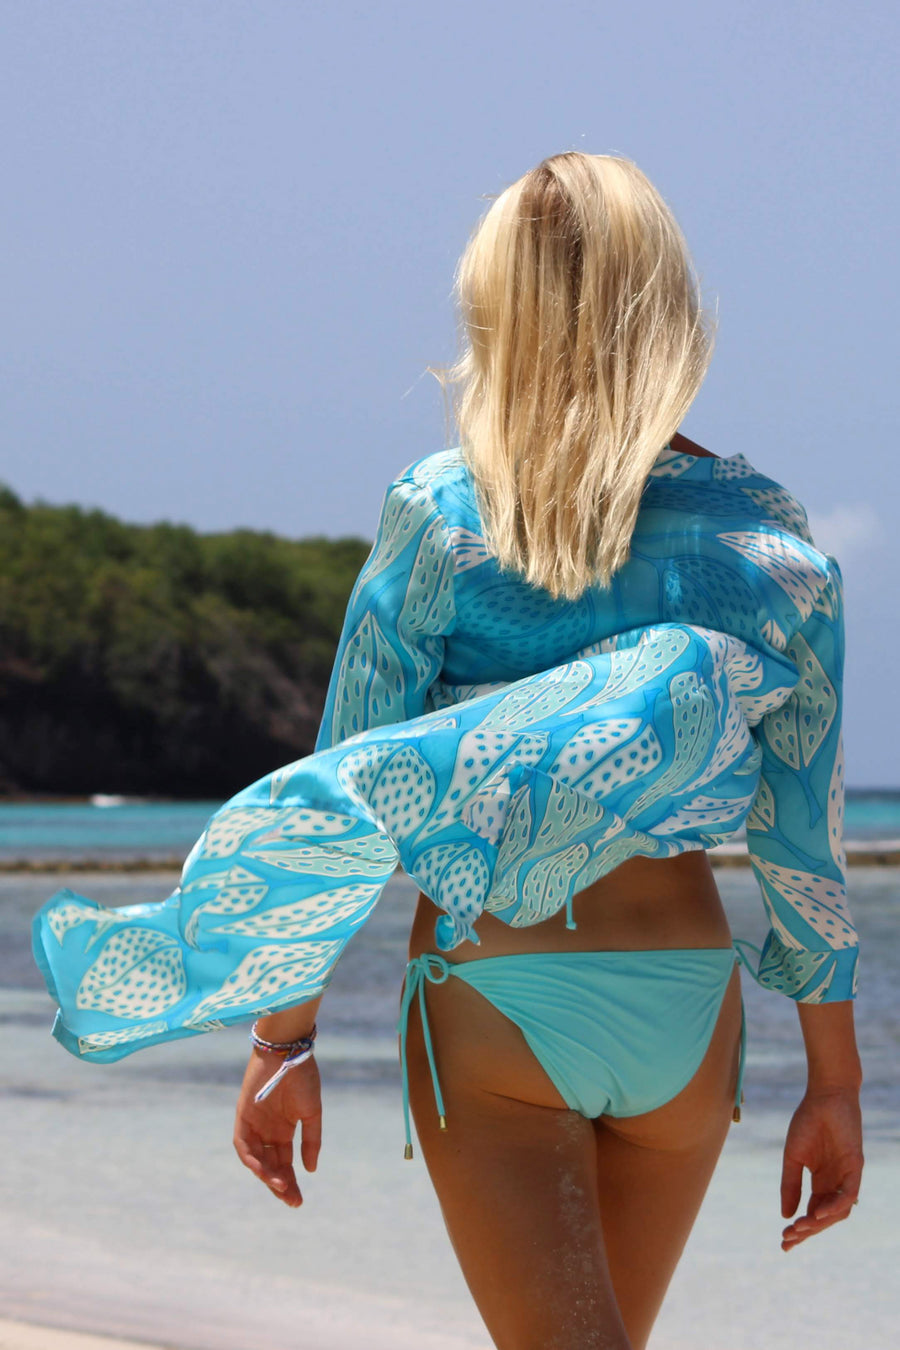 Womens pure silk shirt dress cover up blue leaves design by Lotty B Mustique luxury resort wear